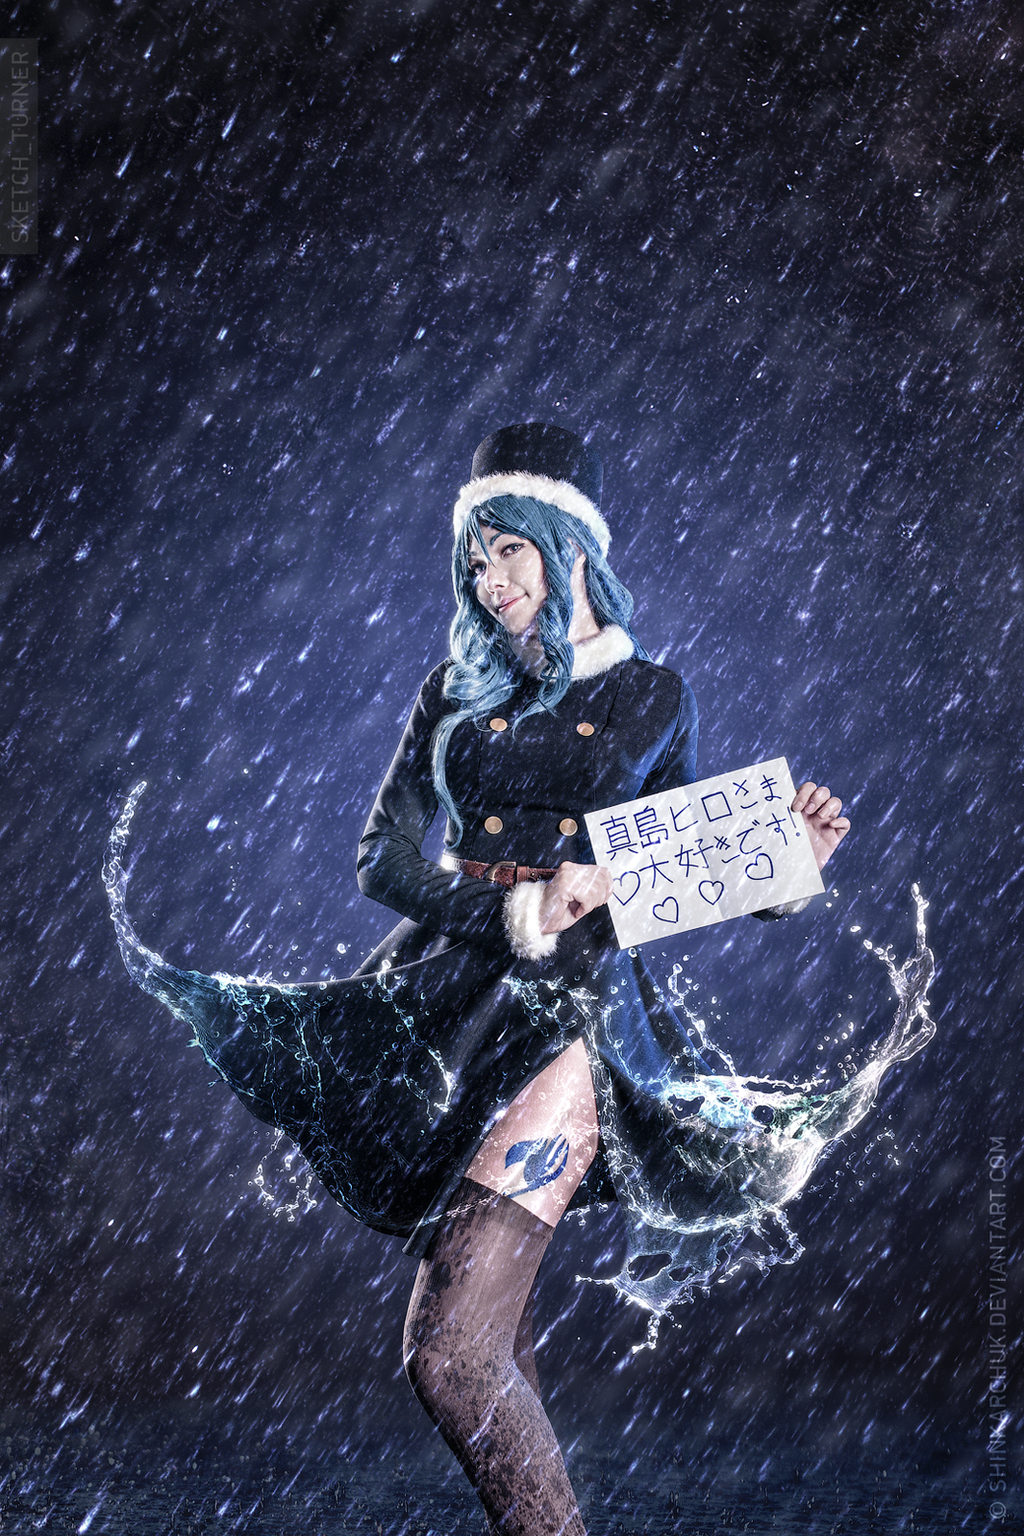 Fairy Tail: Juvia Lockser by Shinkarchuk